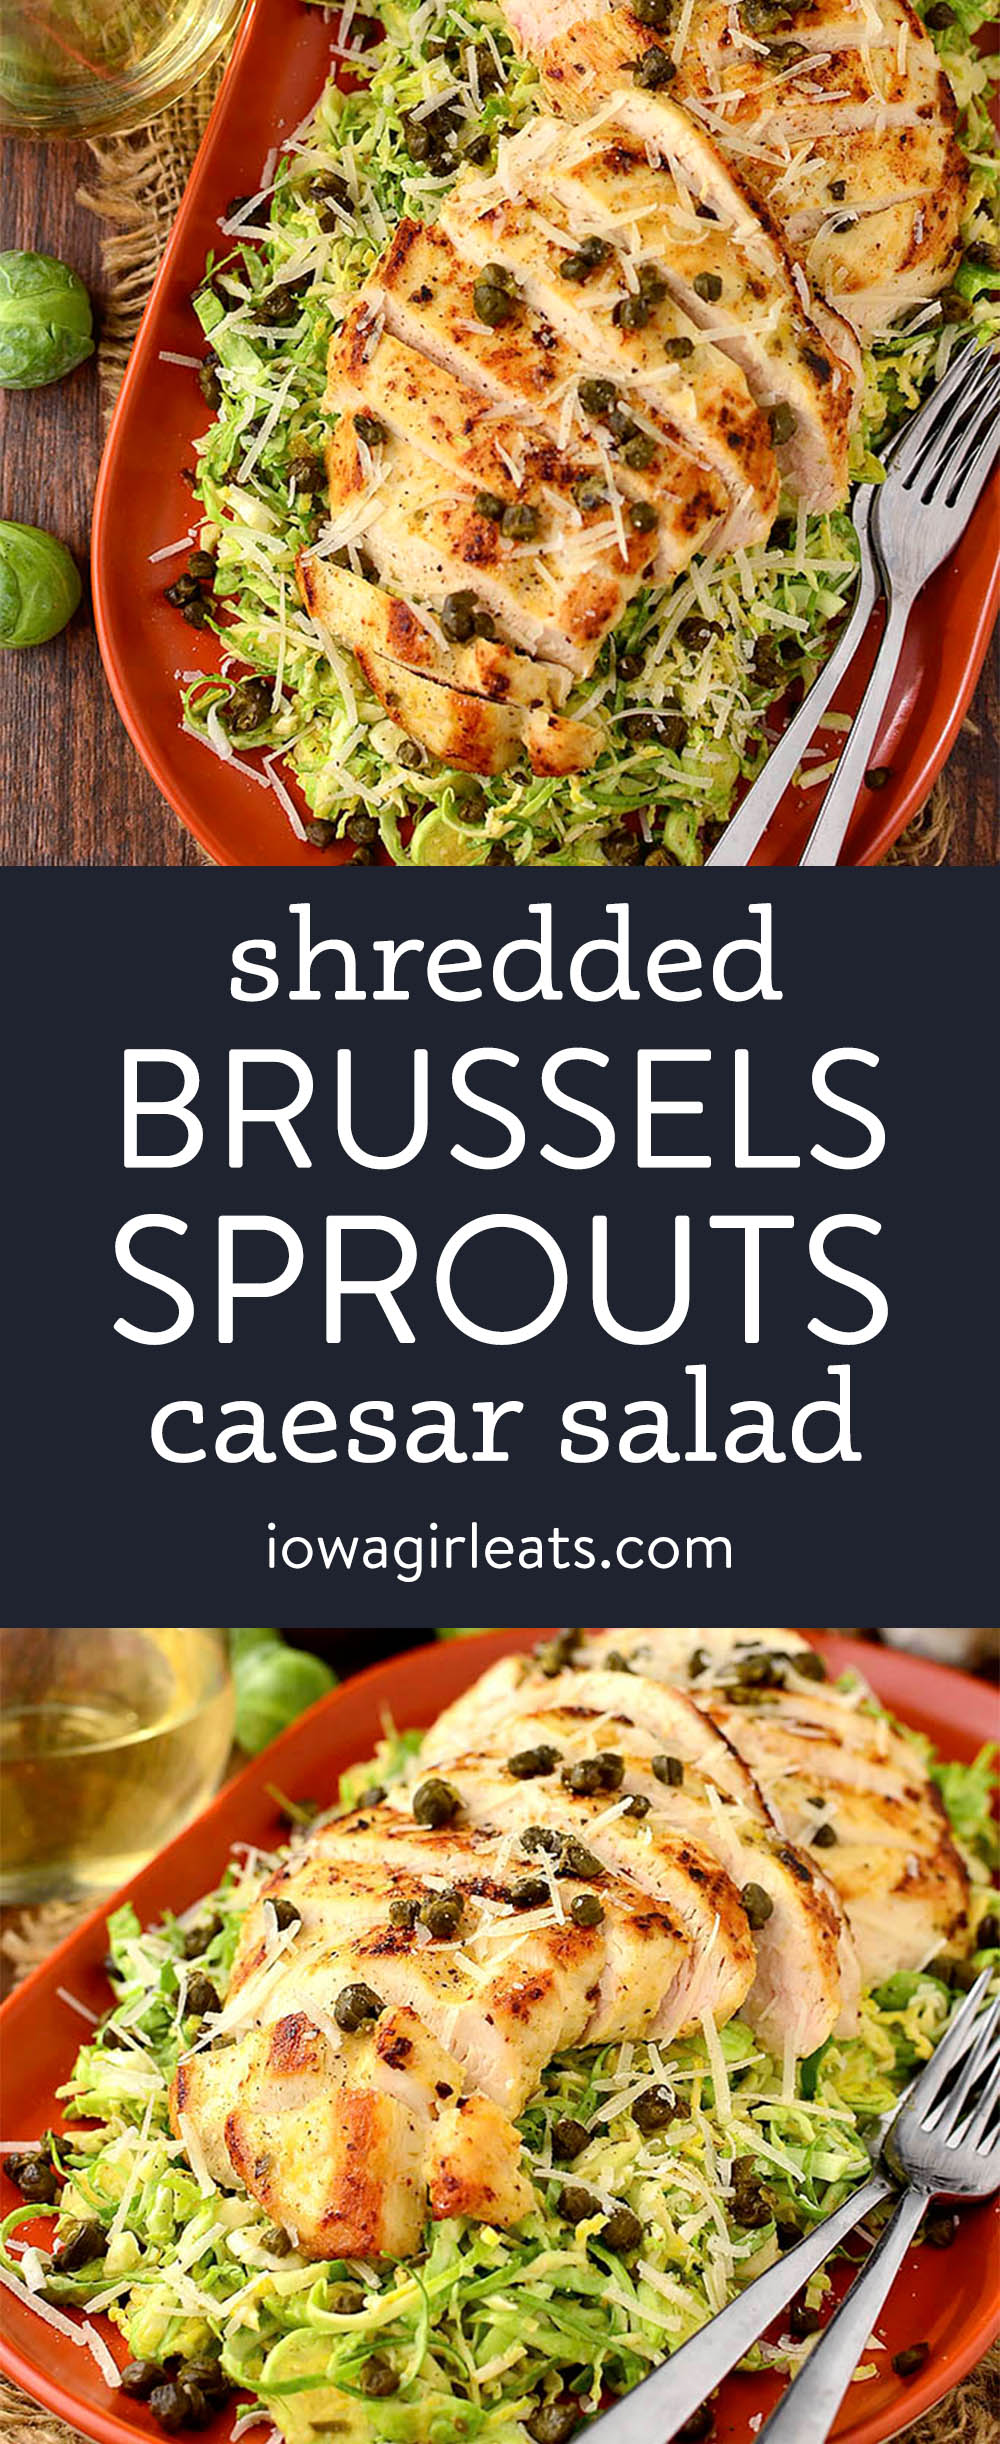 photo collage of shredded brussels sprout caesar salad